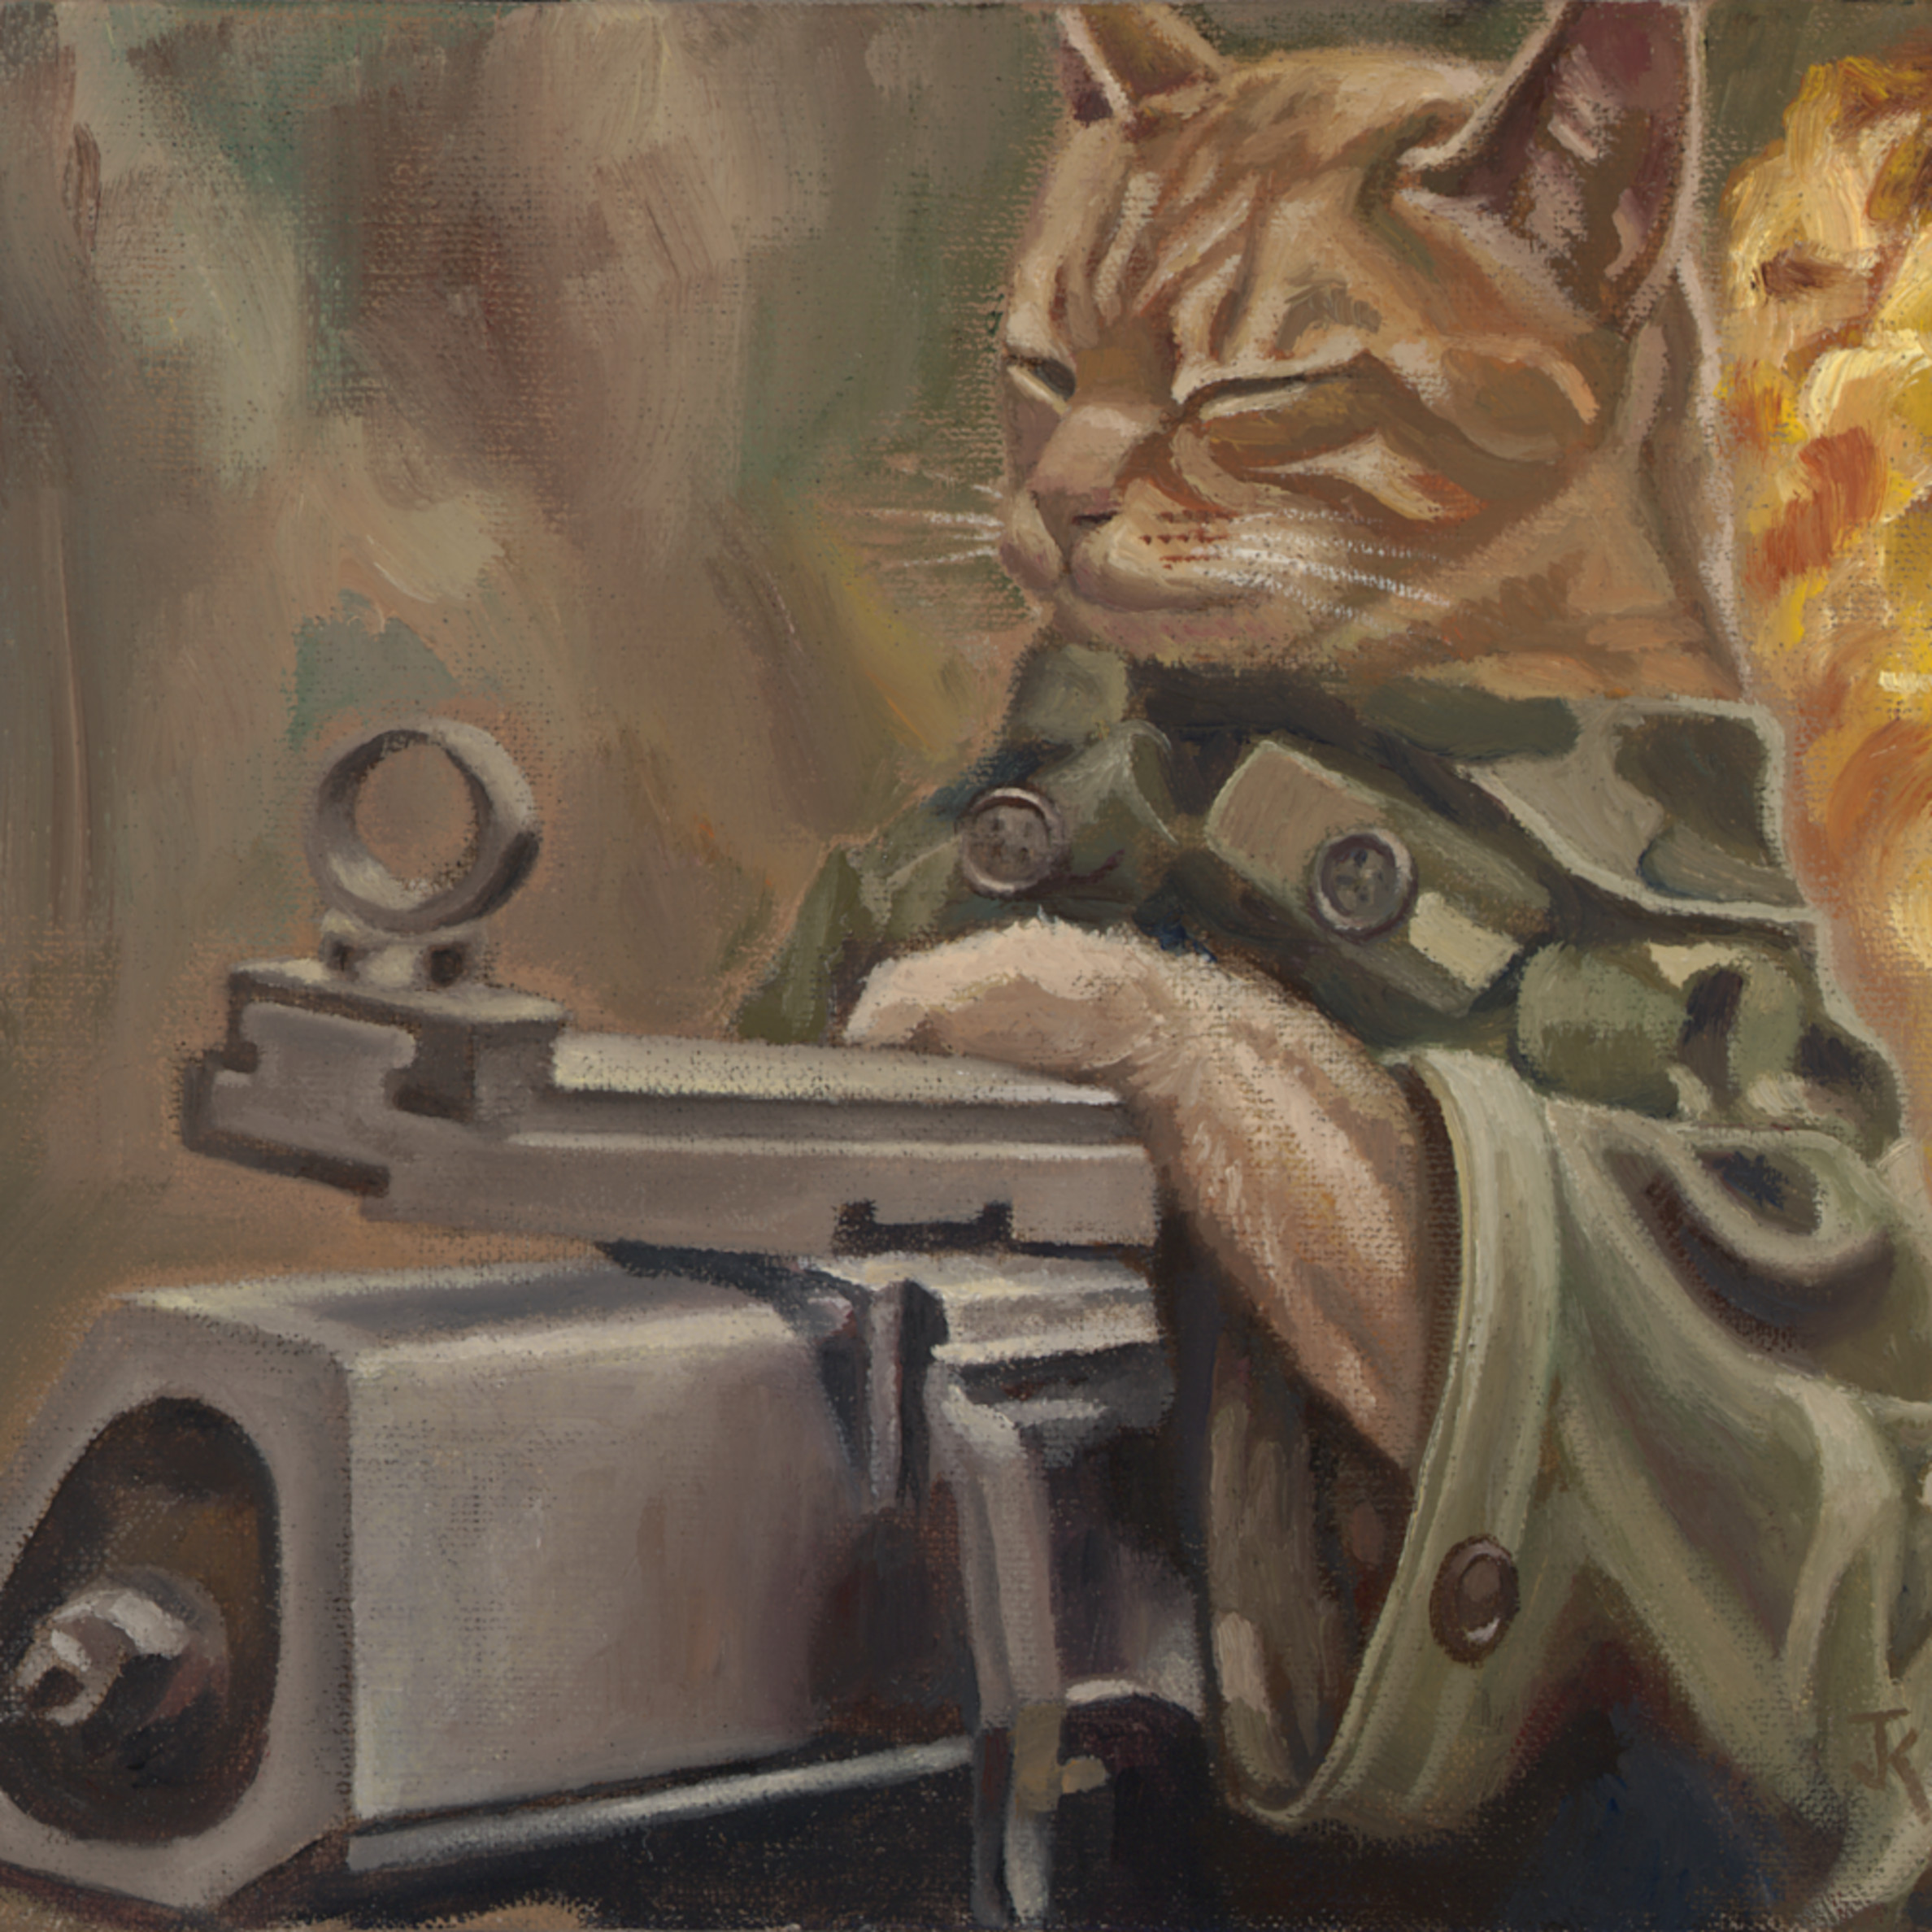 Modern warfare kitty rgb zvi4uu